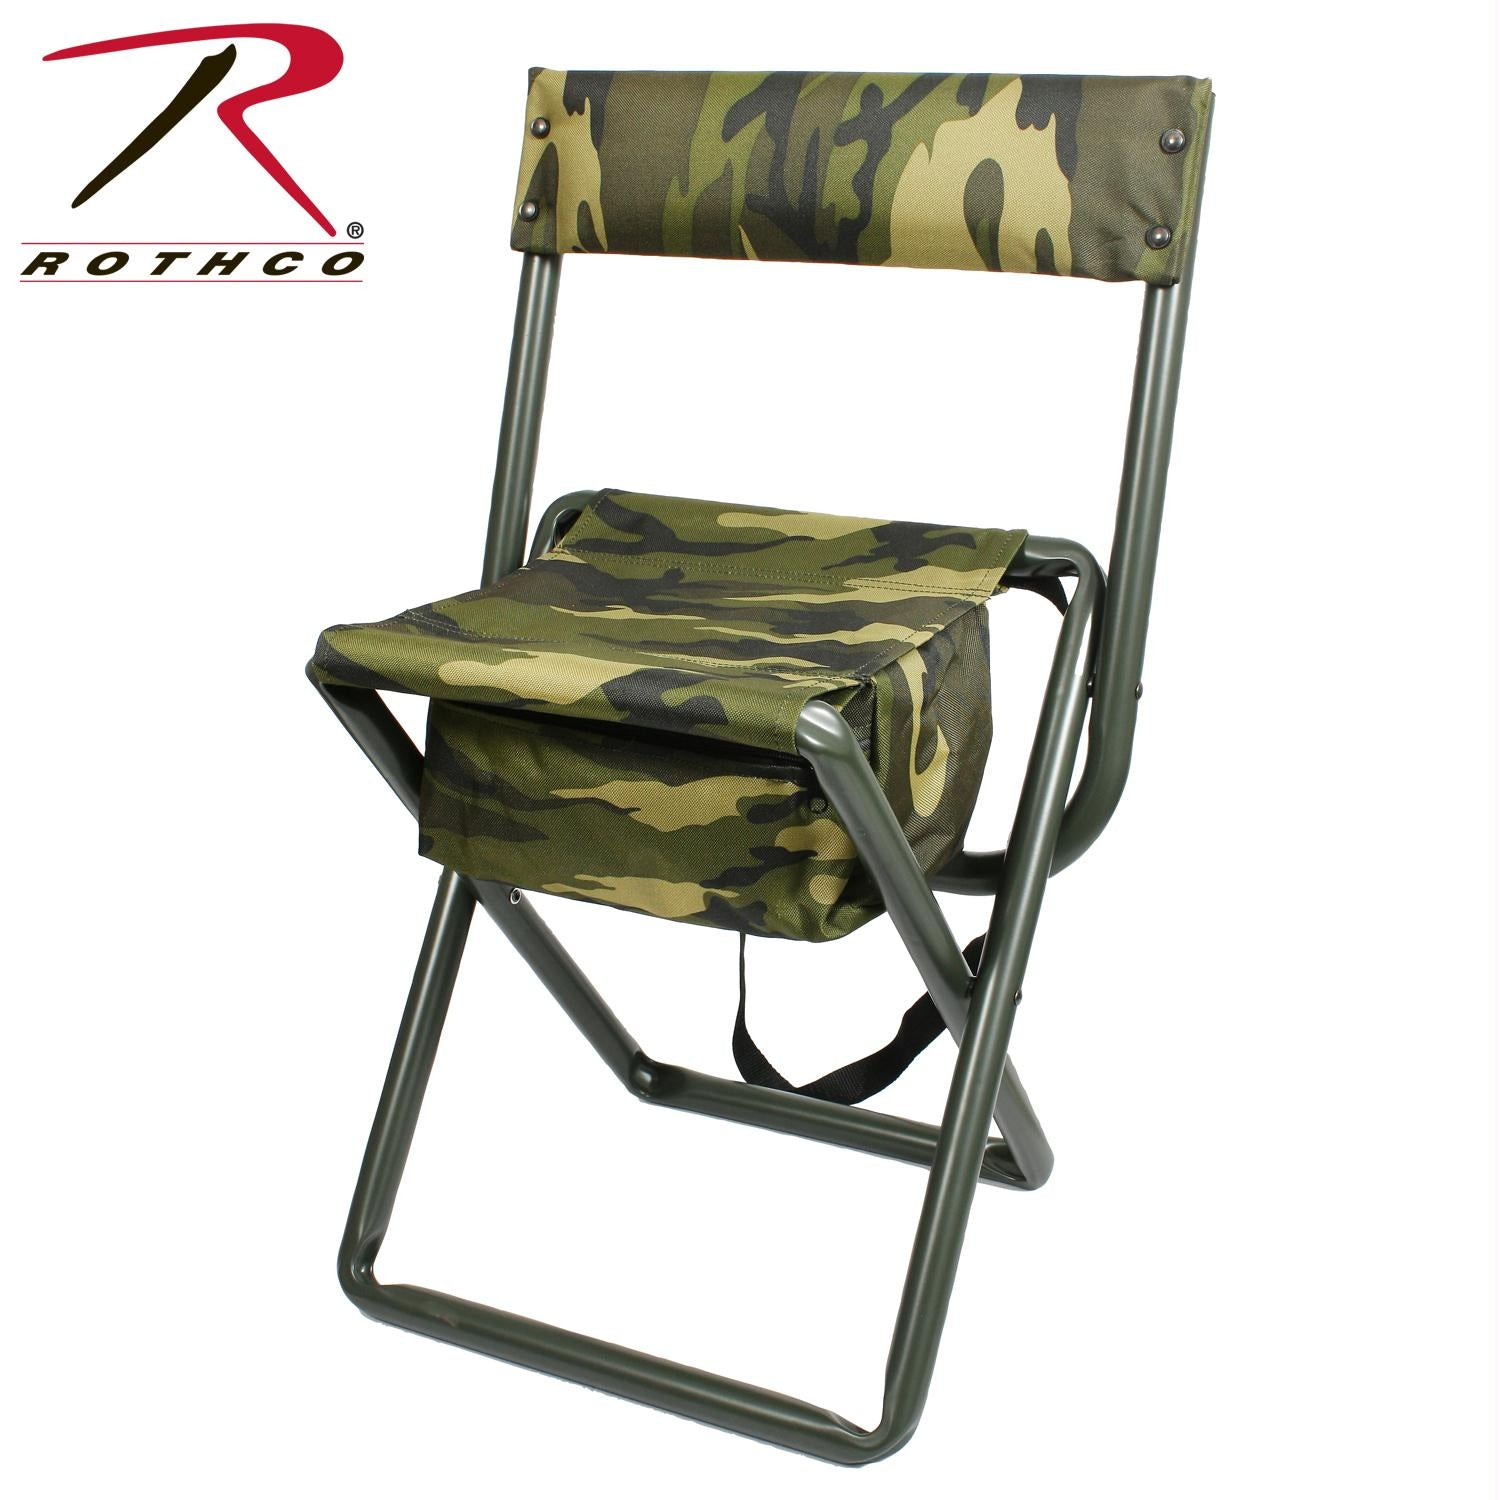 Rothco Deluxe Camo Stool w/ Pouch - Woodland Camo